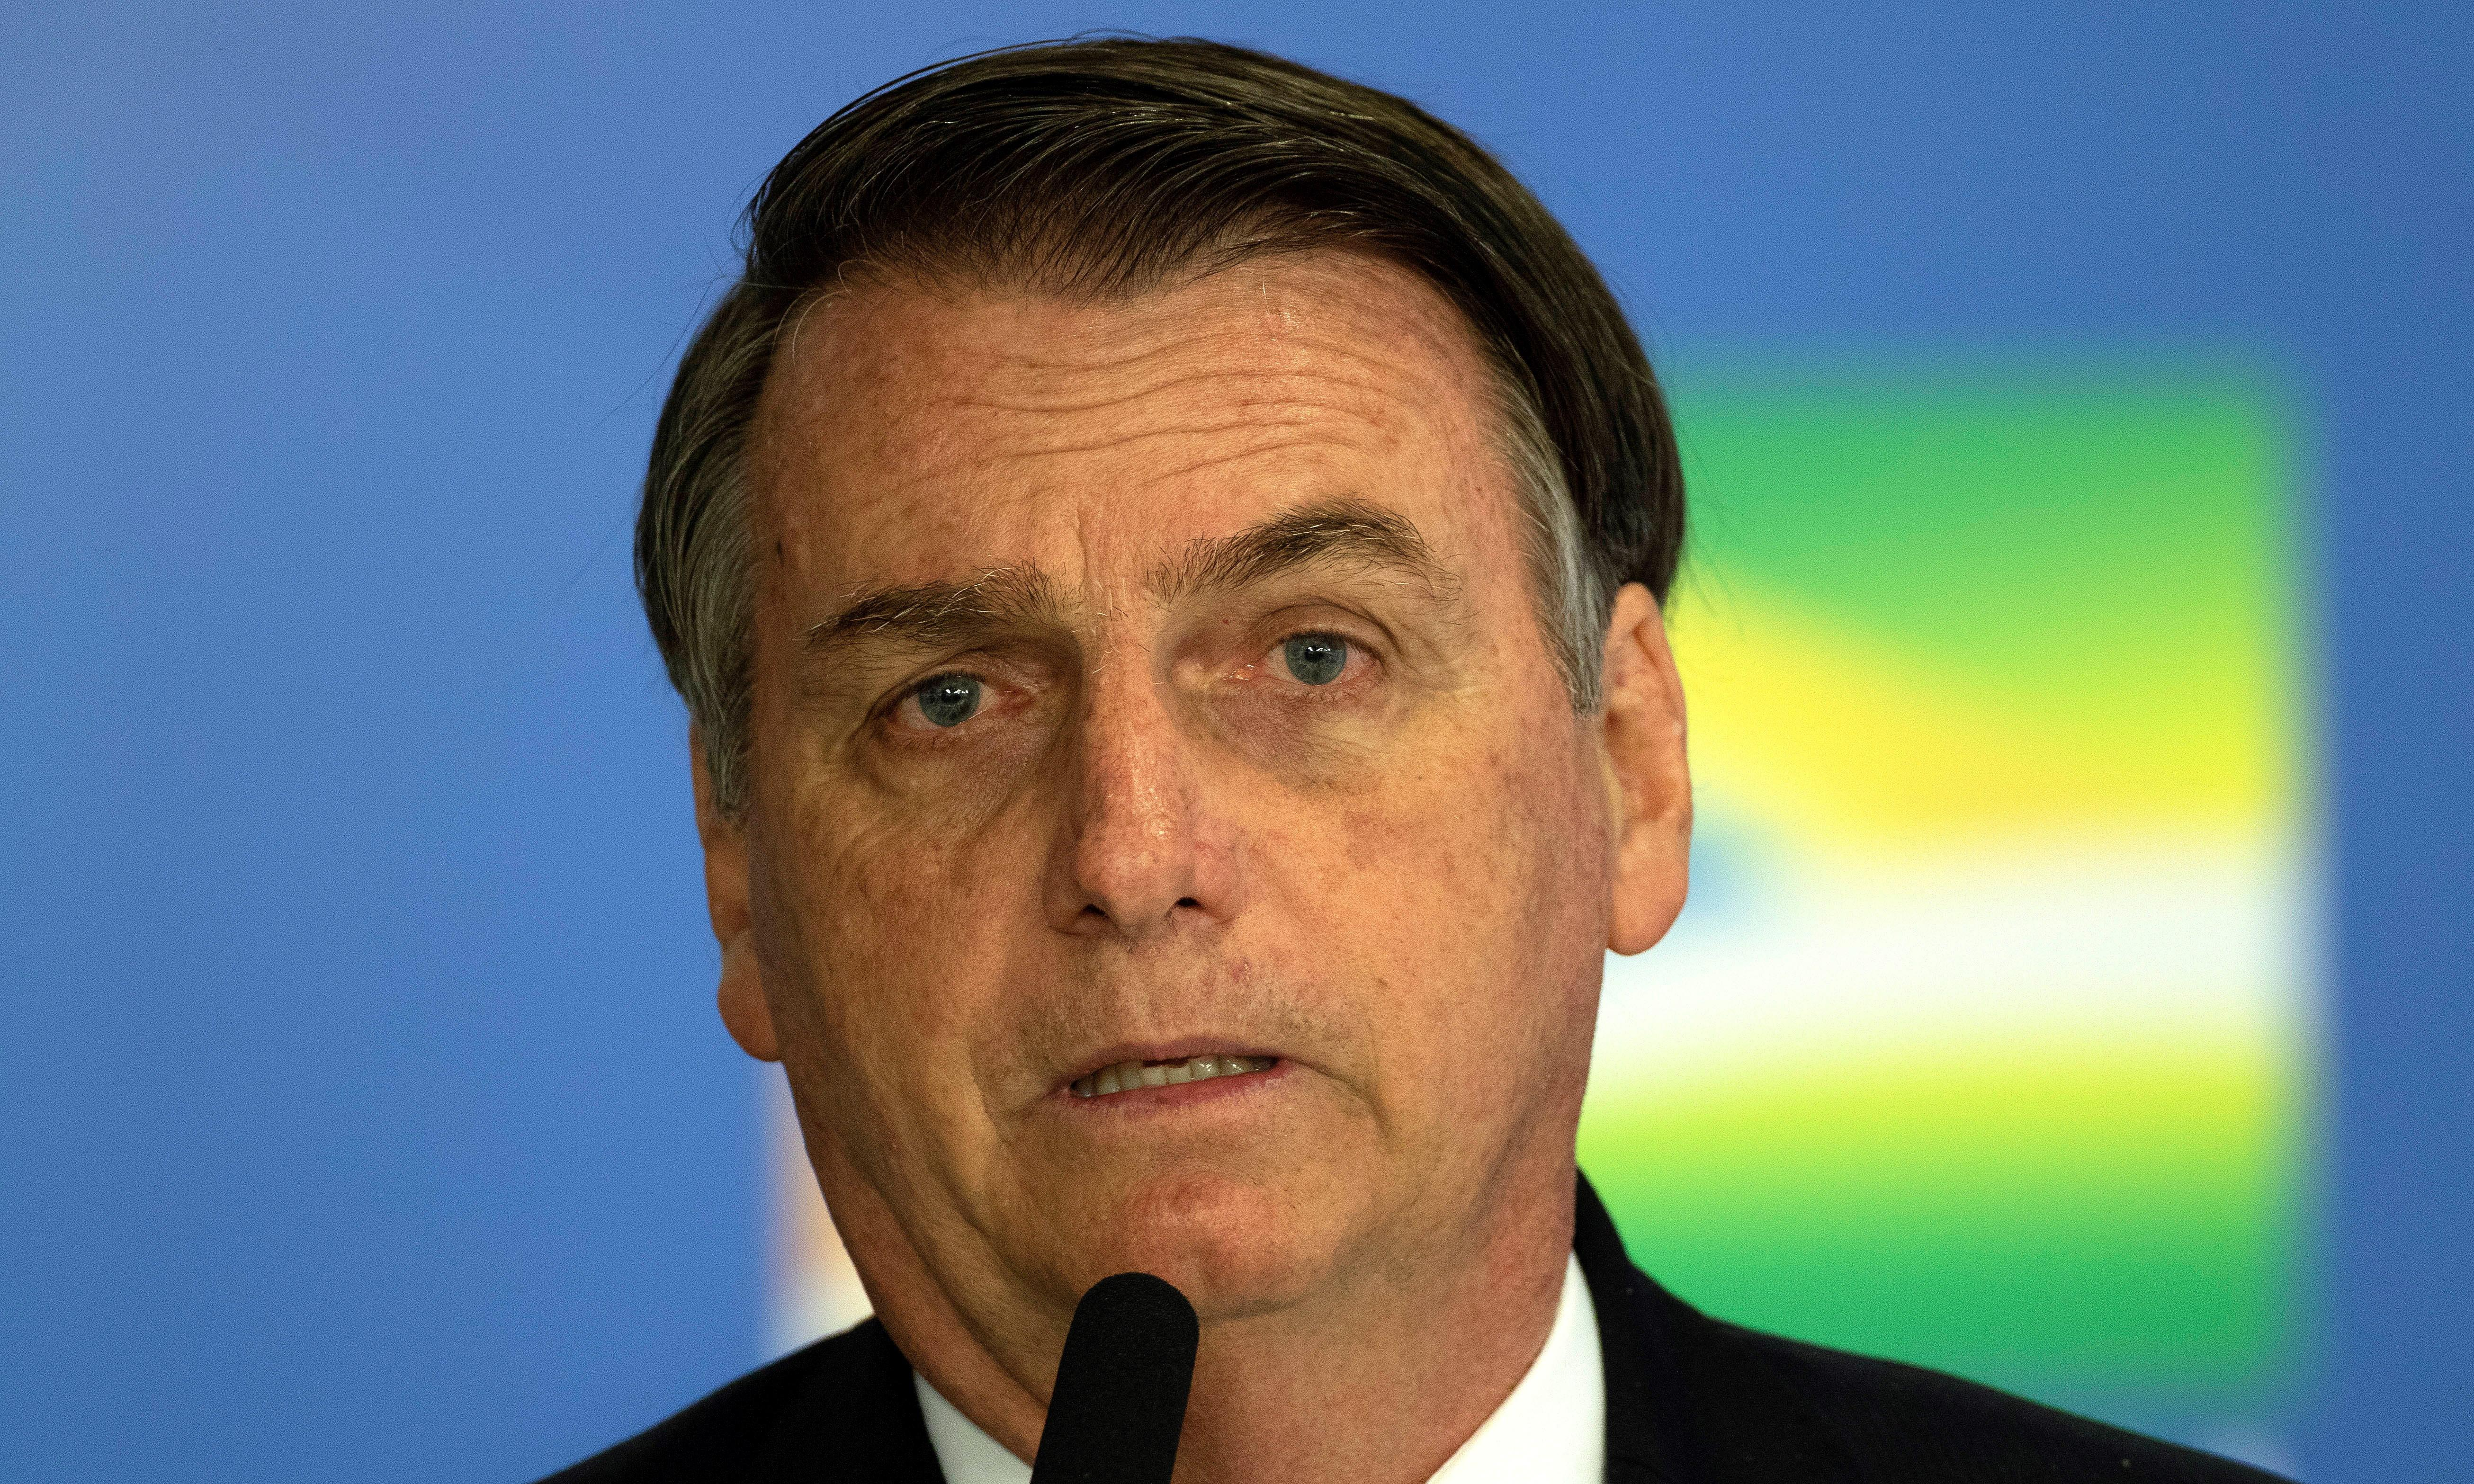 Brazil must not become a 'gay tourism paradise', says Bolsonaro